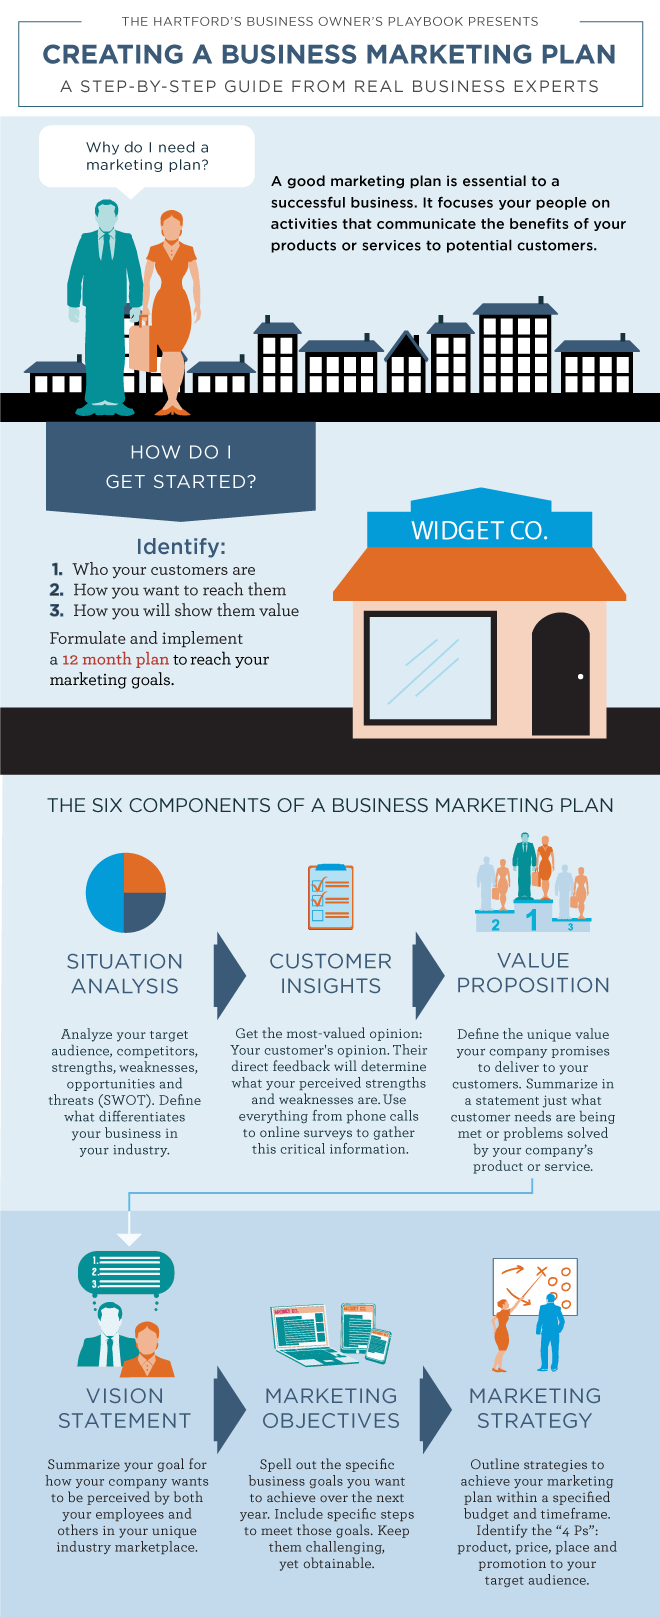 Creating a Business Marketing Plan